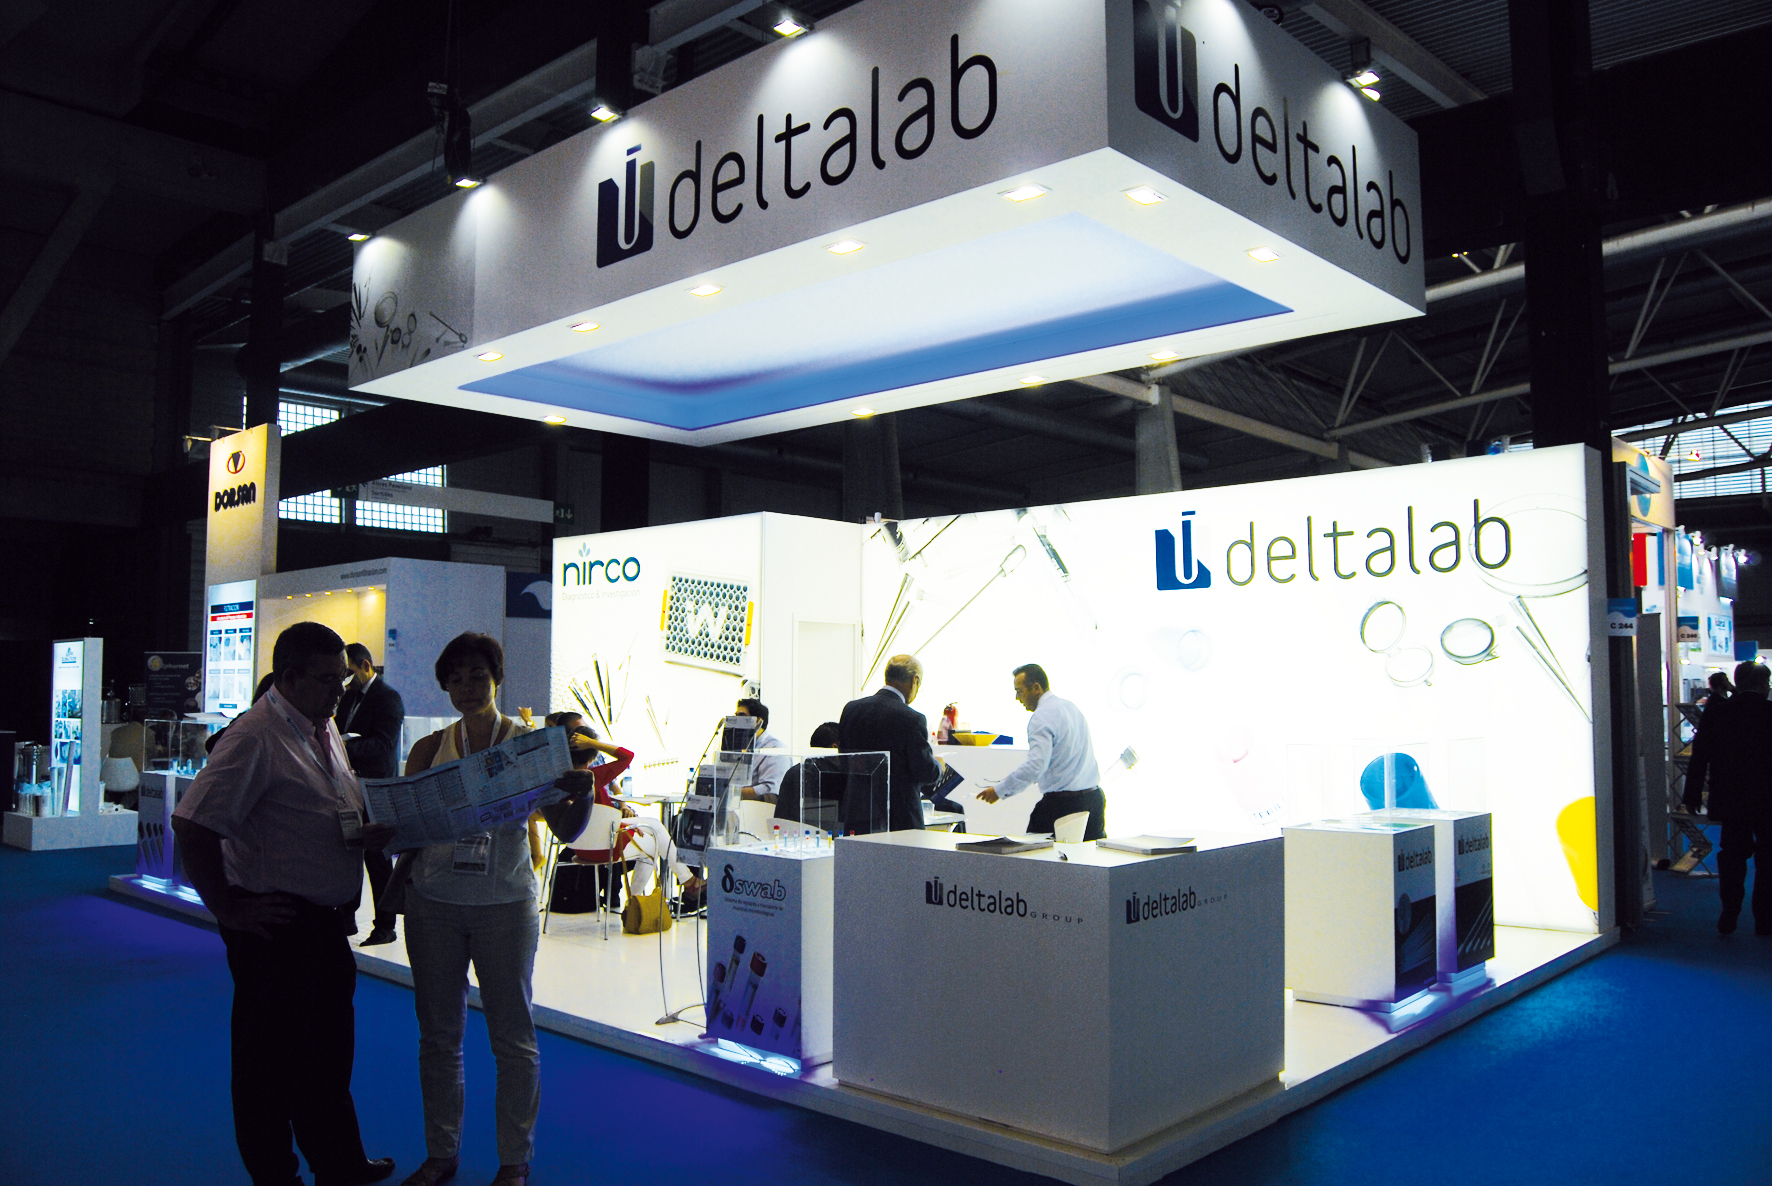 DELTALAB at Expoquimia 2014